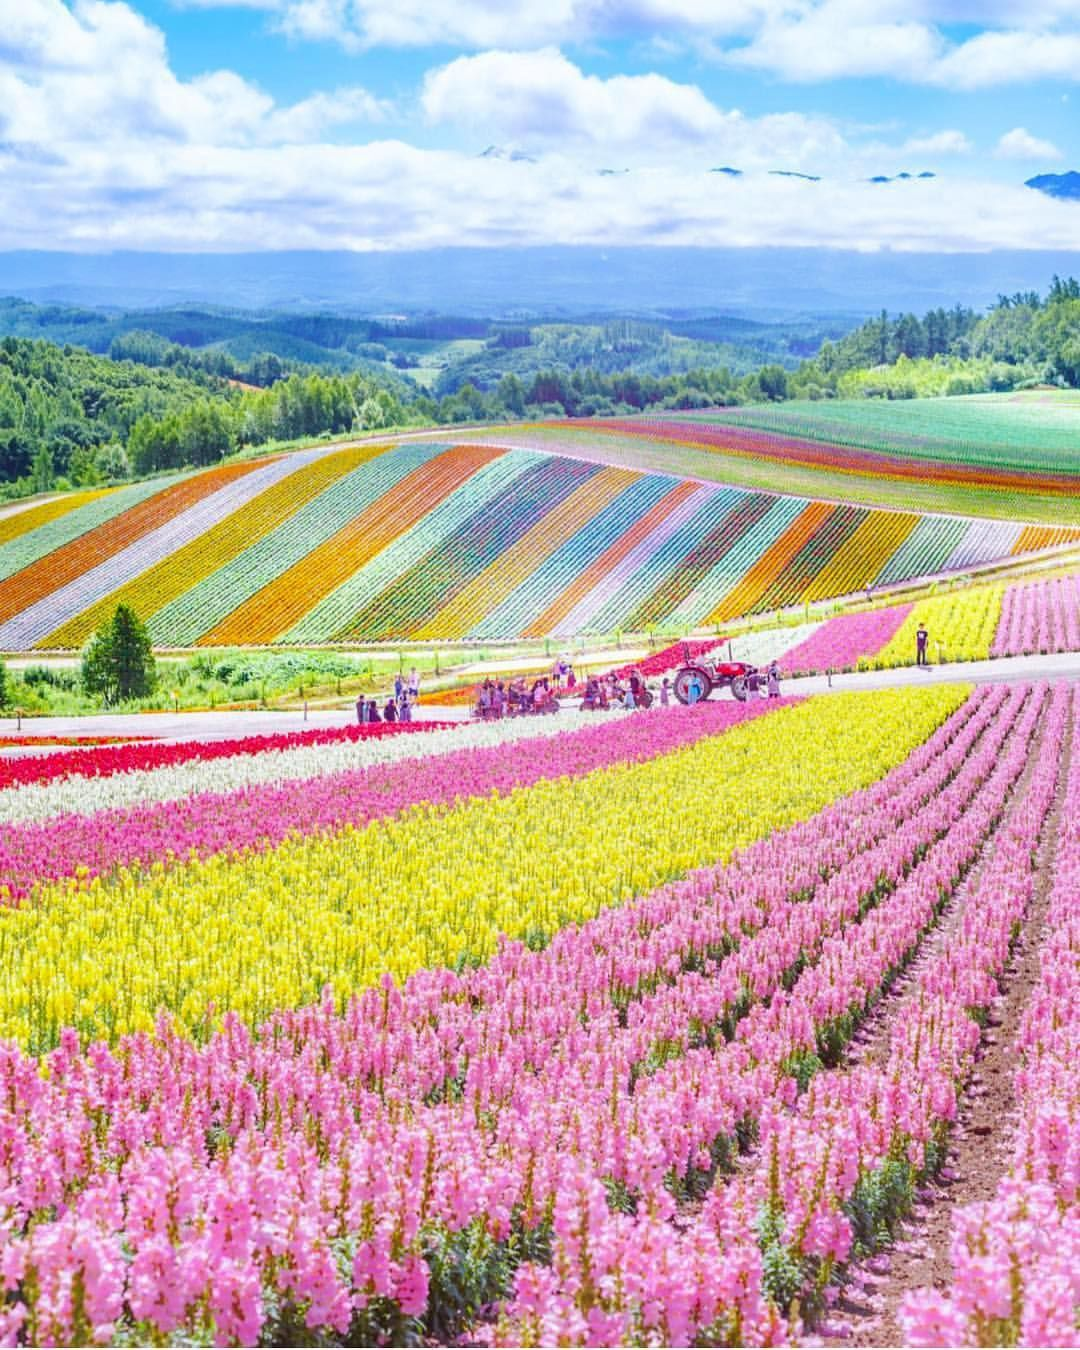 Pin by geri on travel pinterest hokkaido japan and travel goals there are no words to describe this field from the wonderful flower field invites us to enjoy its beauty izmirmasajfo